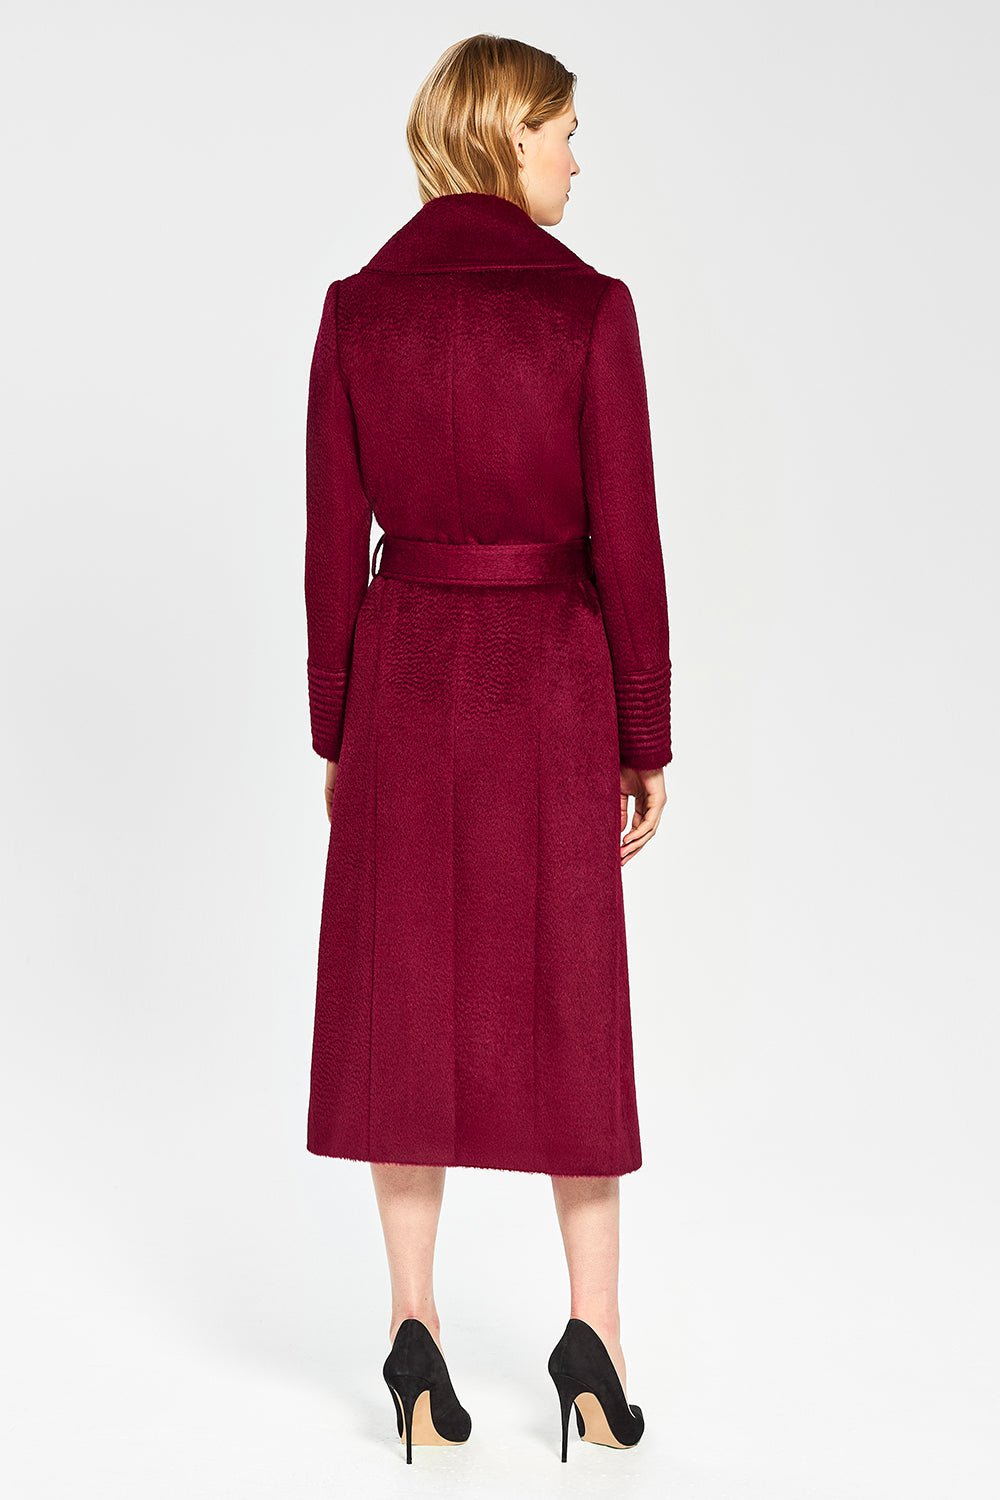 Sentaler Suri Alpaca Long Notched Collar Wrap Coat featured in Suri Alpaca and available in Bordeaux. Seen from back.